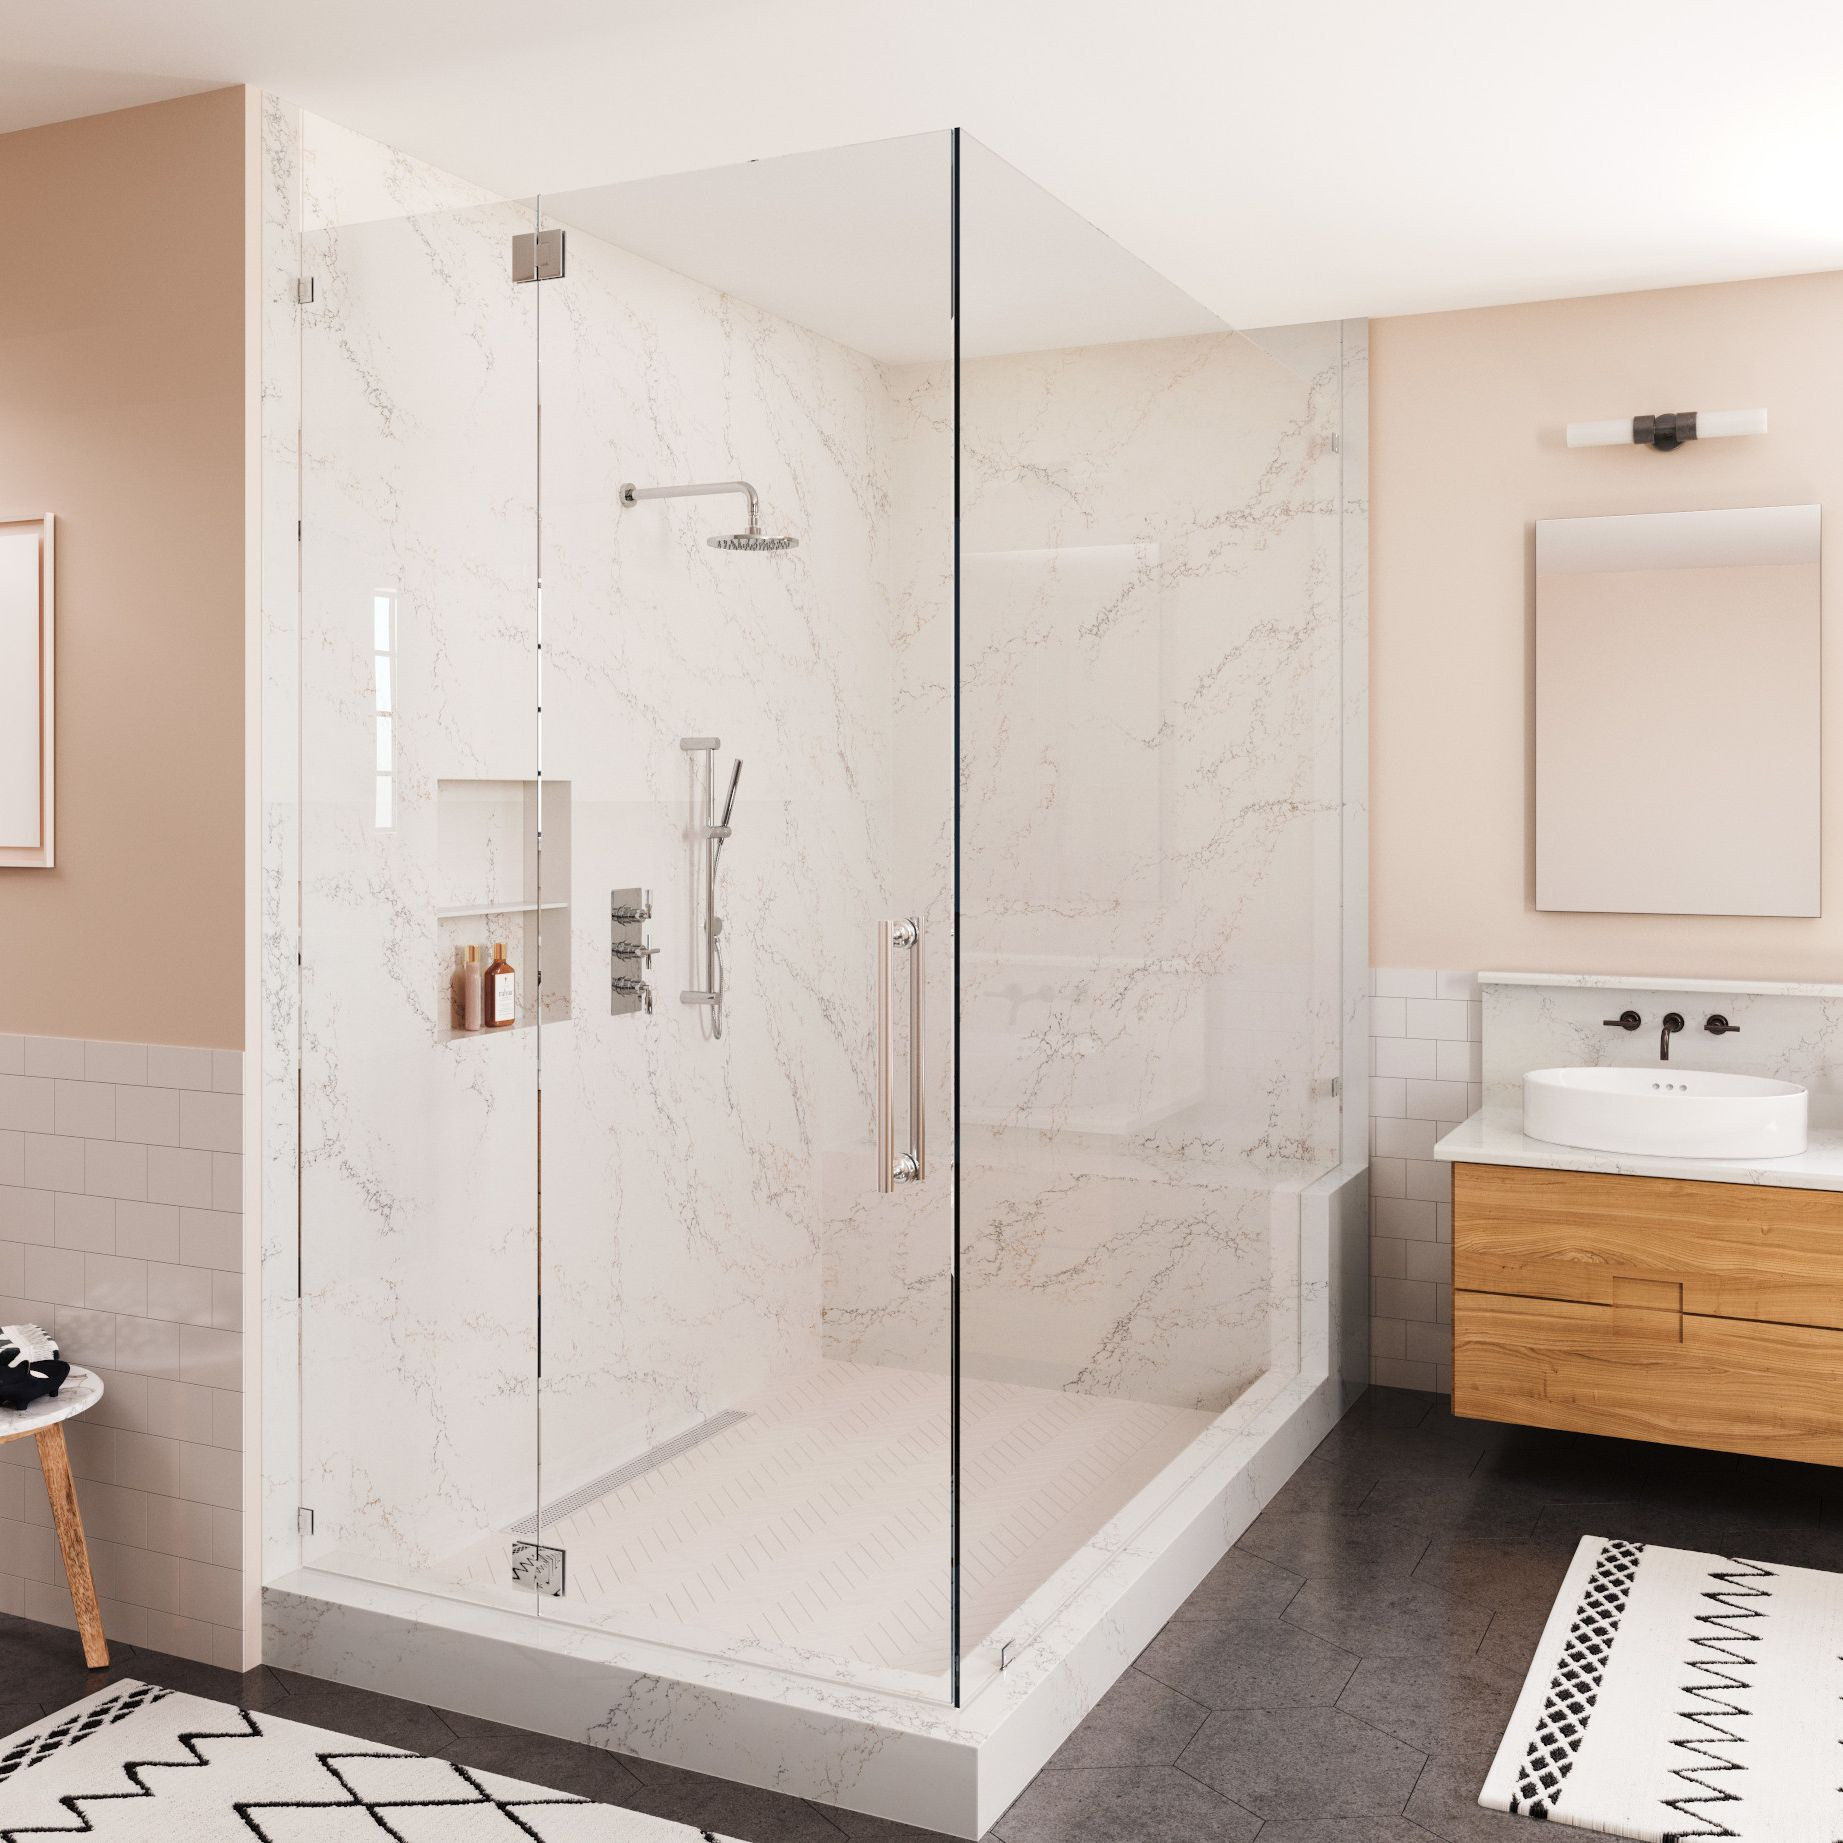 A shower unit in a bathroom  Description automatically generated with medium confidence